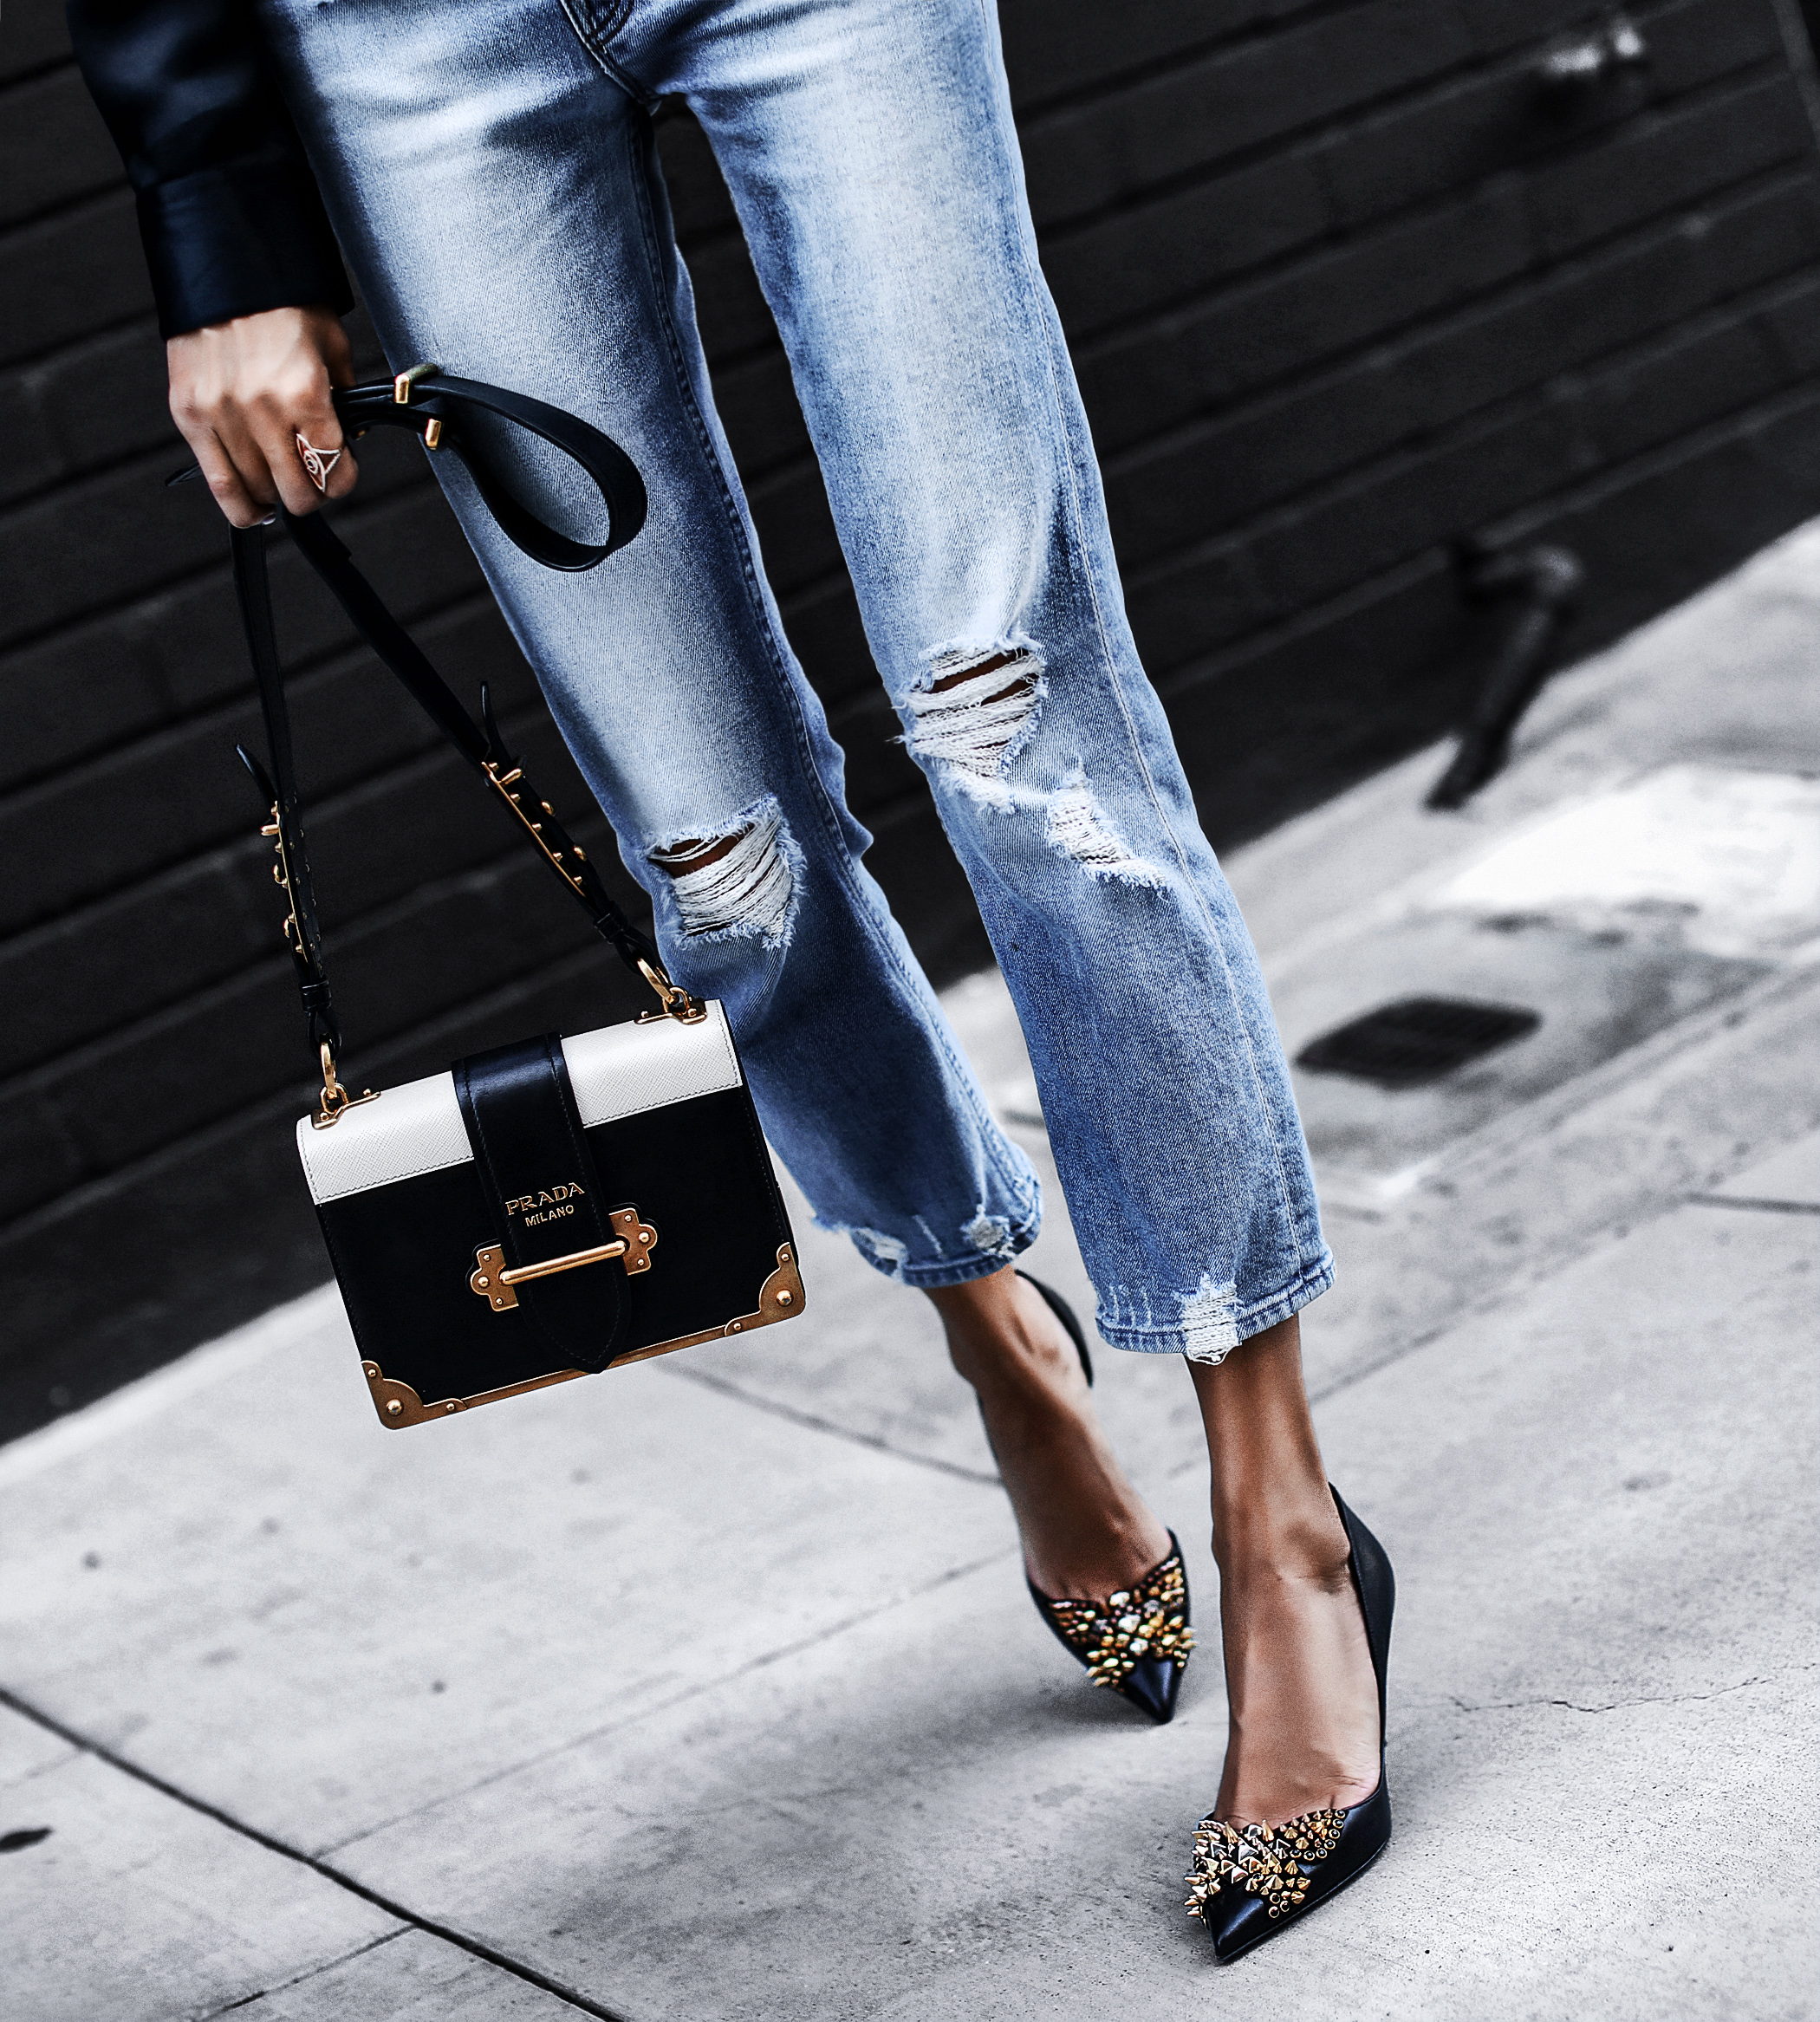 distressed light wash mom jeans, prada bag, black pointed heels with gold spikes